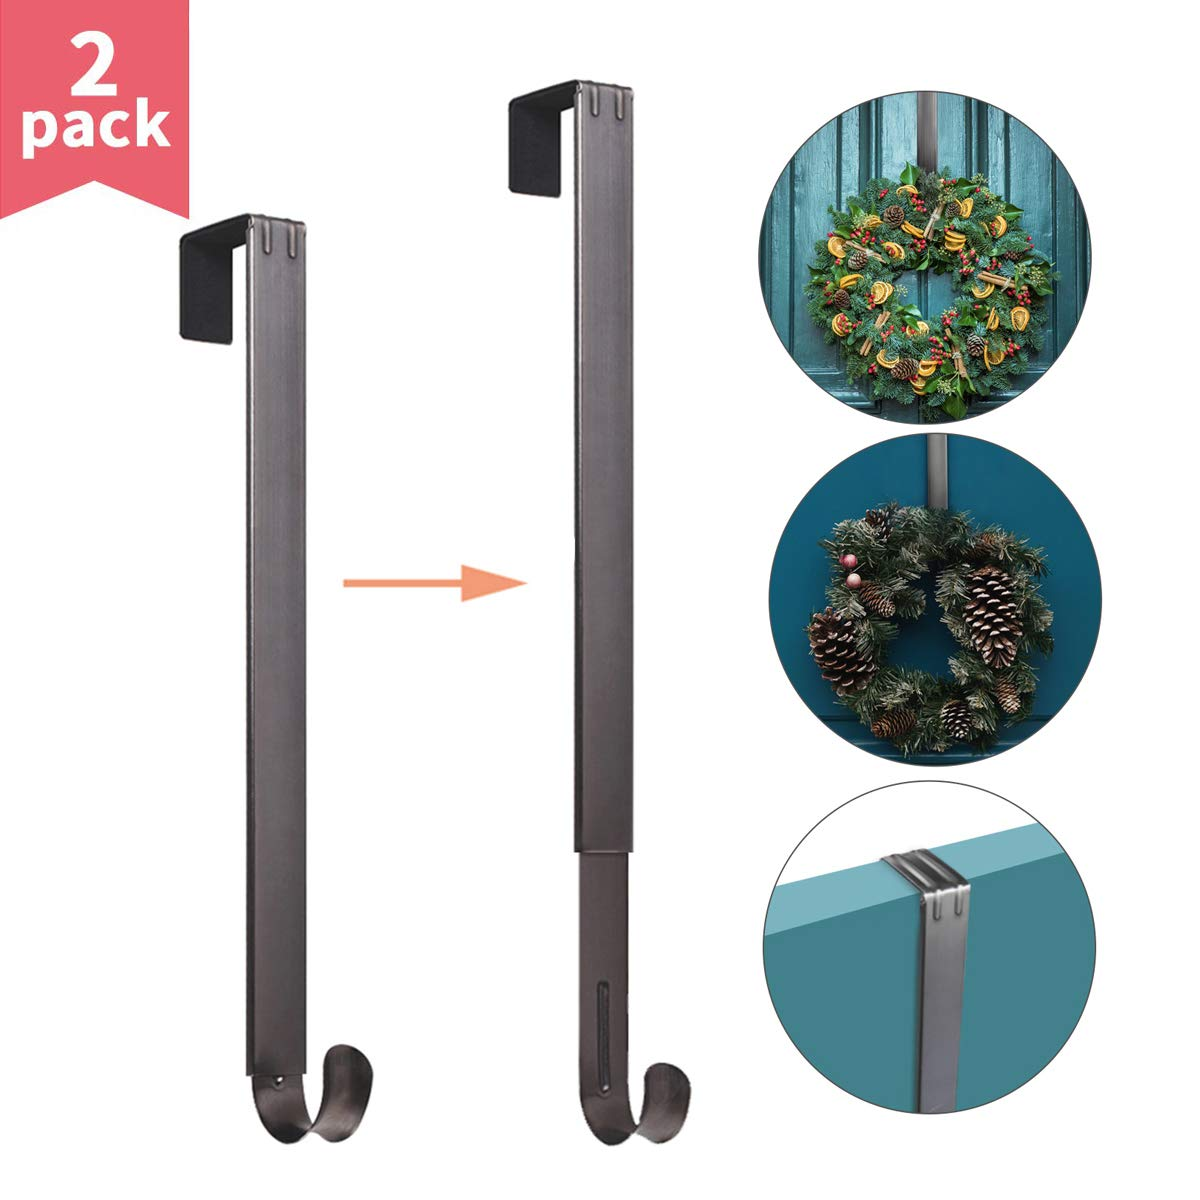 Myfolrena Adjustable Wreath Hanger from 15''-24'', Metal Wreath Hook for Front Door, 20lb(Nickle-2 Pack) by Myfolrena